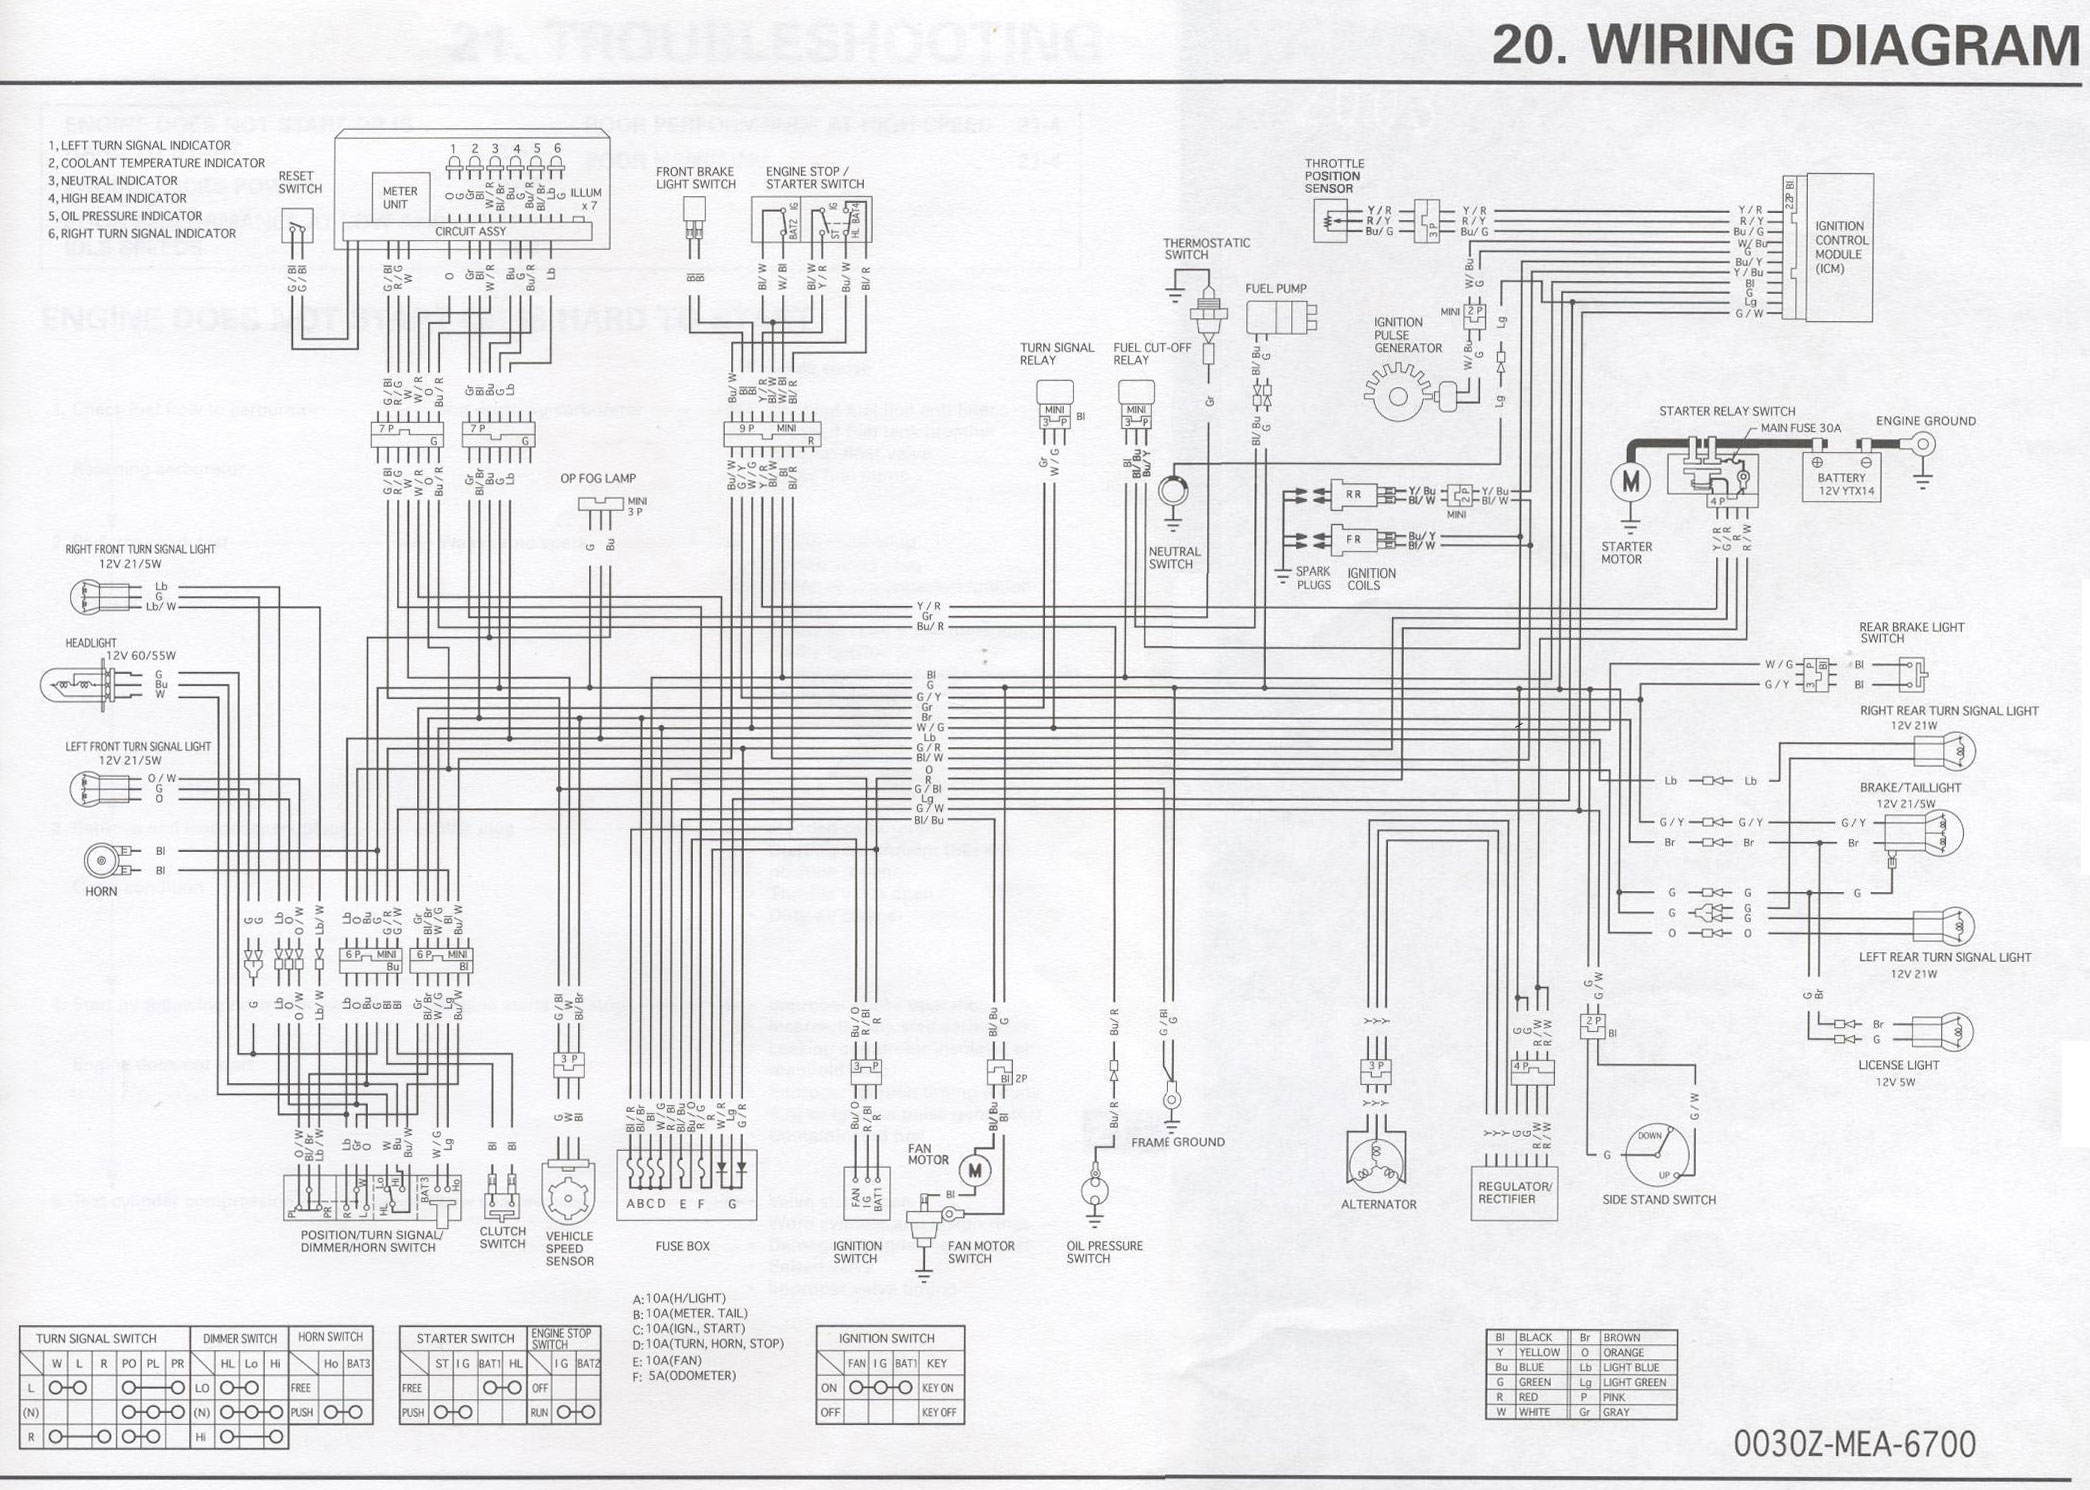 03_VTX1300_schematic motorcycle wire schematics bareass choppers motorcycle tech pages honda vtx 1800 fuse box location at n-0.co